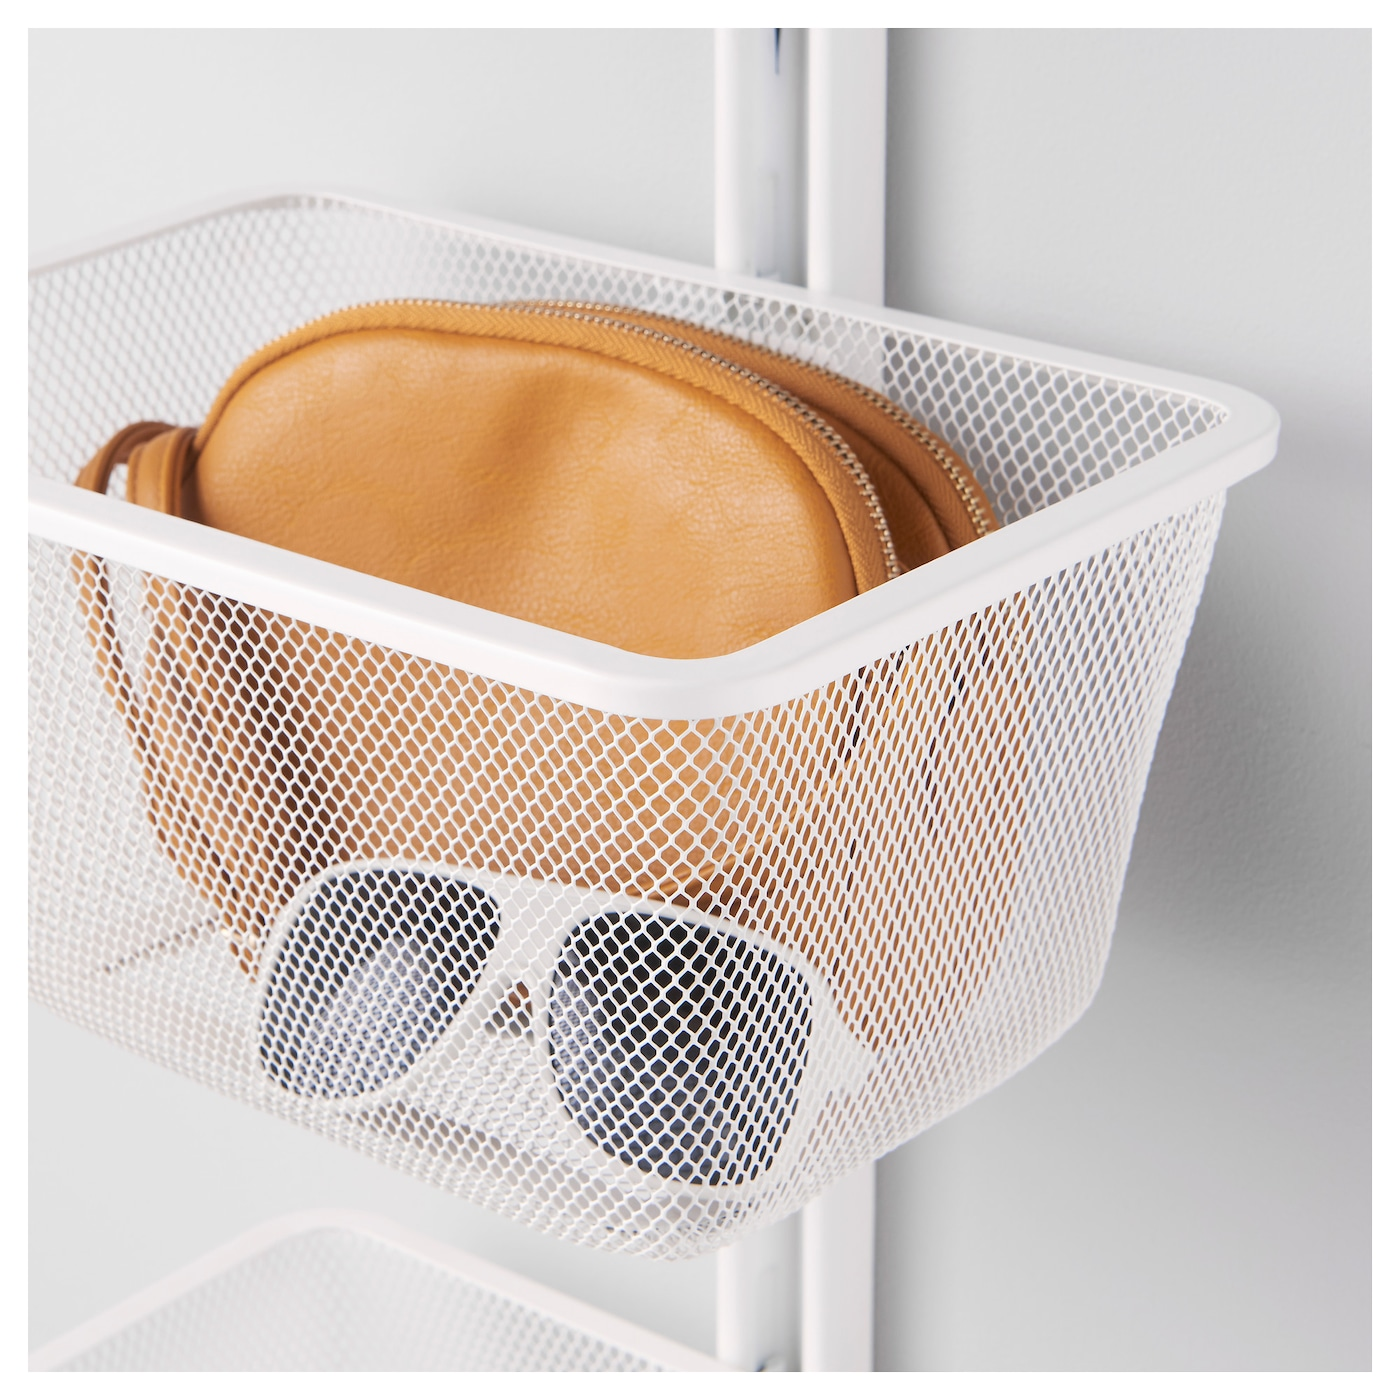 IKEA ALGOT mesh basket with bracket Just click in on ALGOT wall upright – no tools needed.